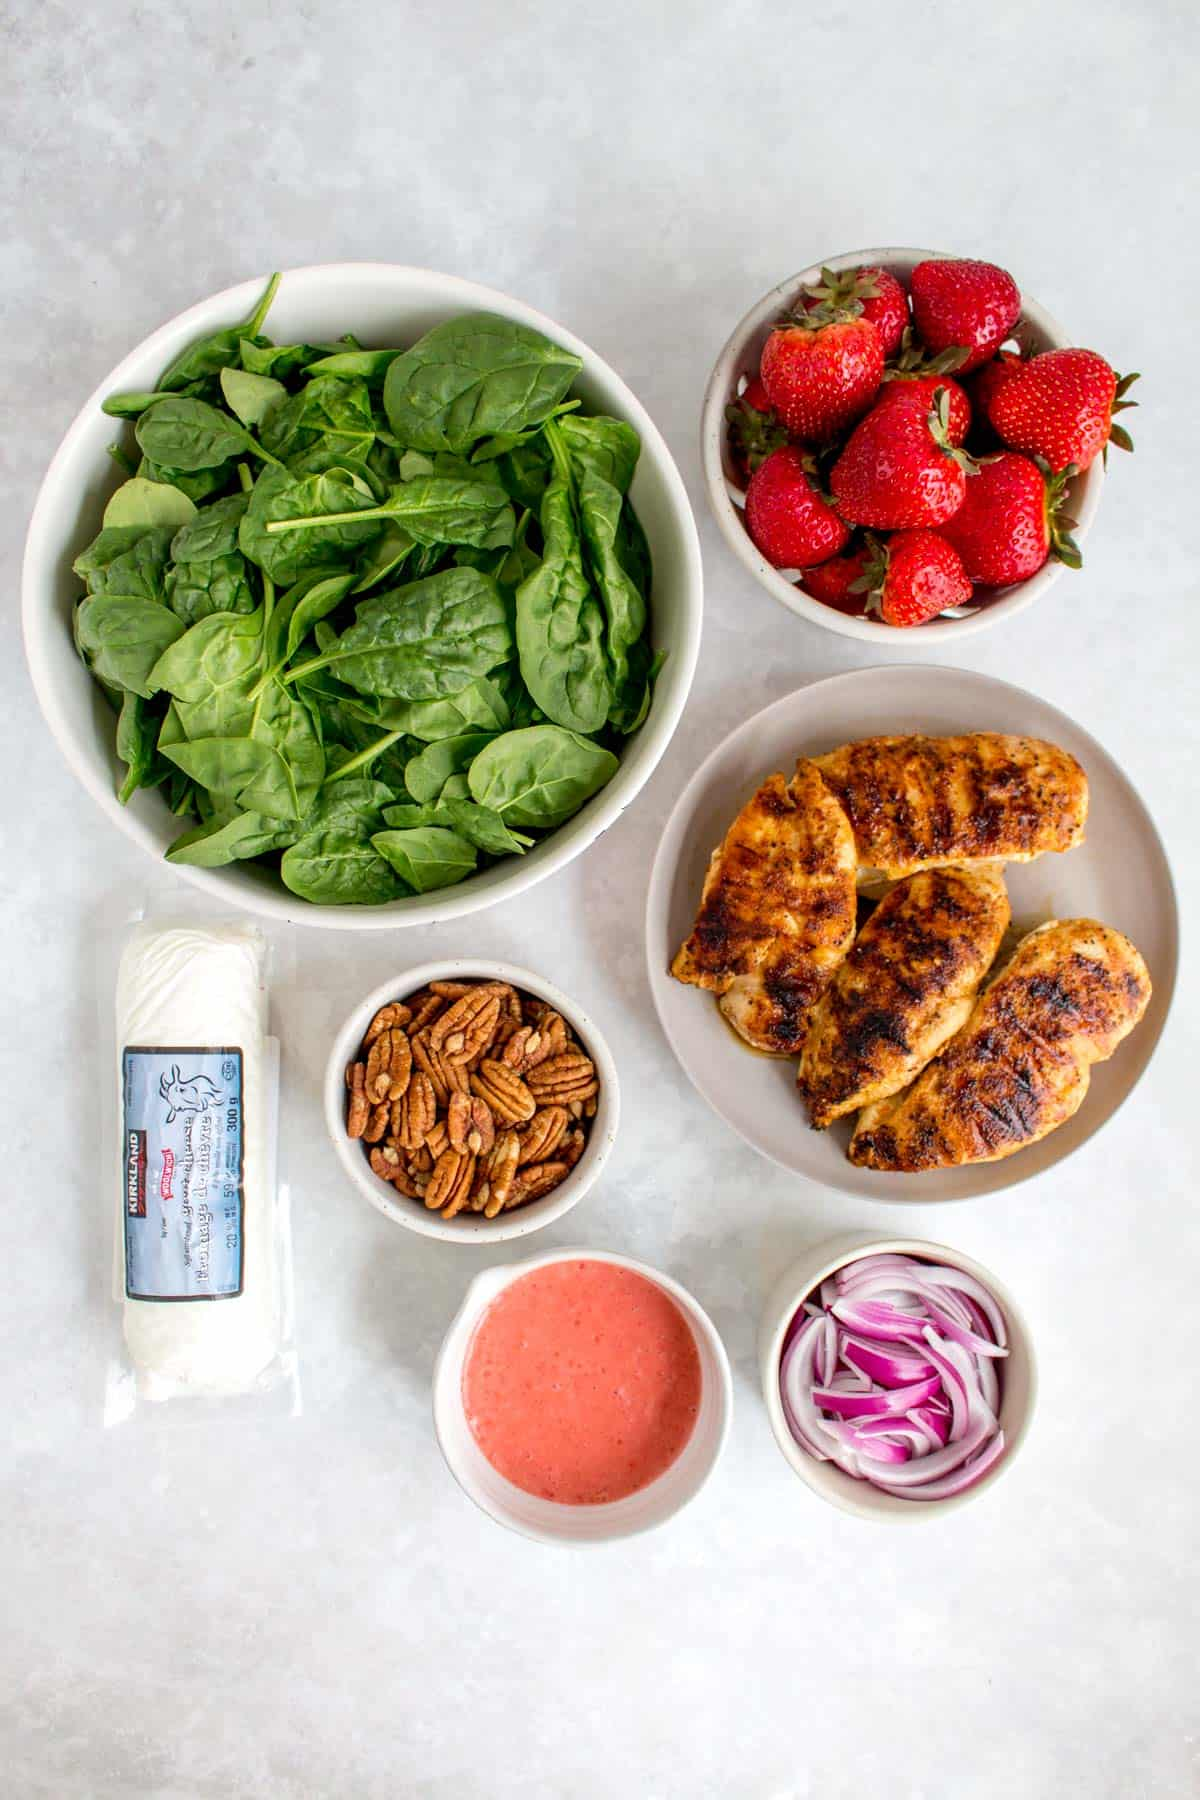 Ingredients needed to make strawberry spinach salad.